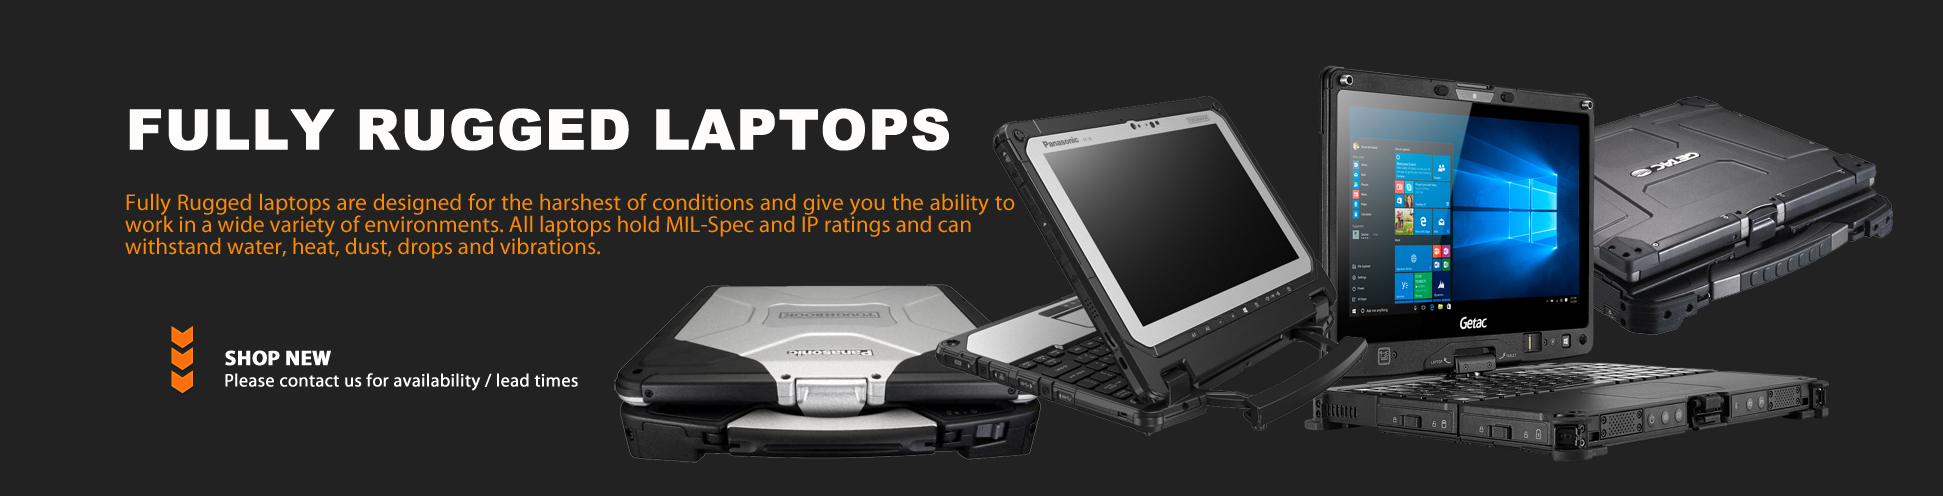 Filly Rugged Laptops - New | Go-Rugged